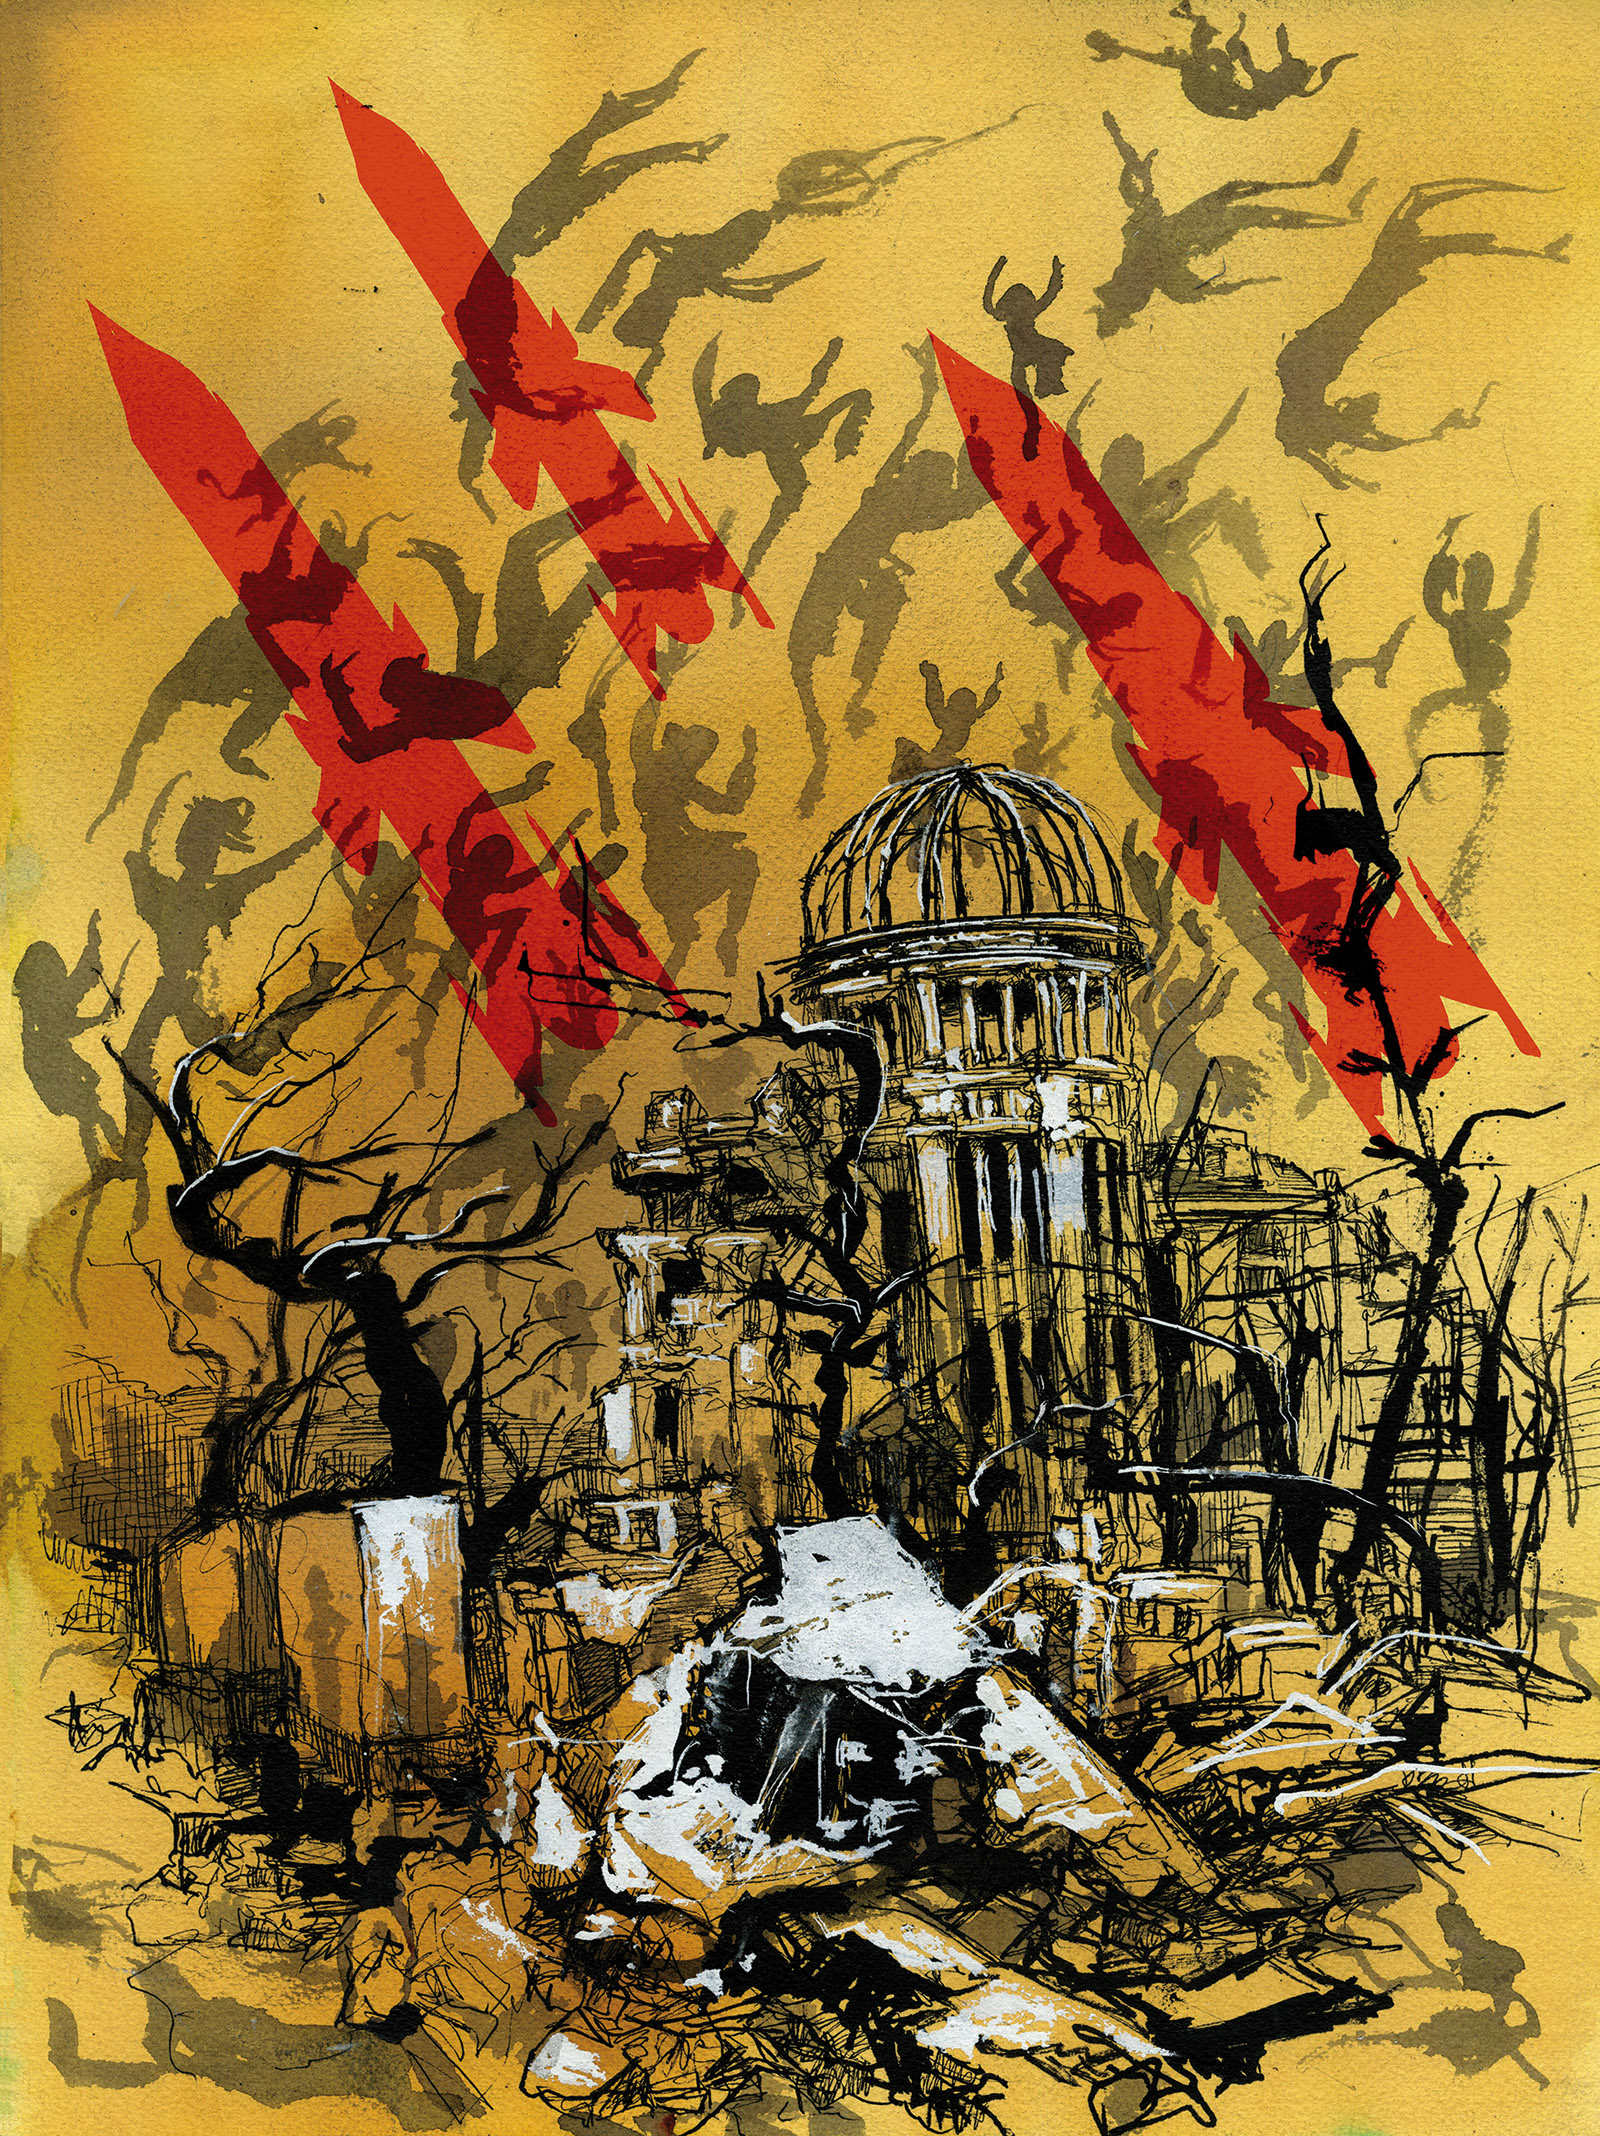 Illustration by Molly Crabapple